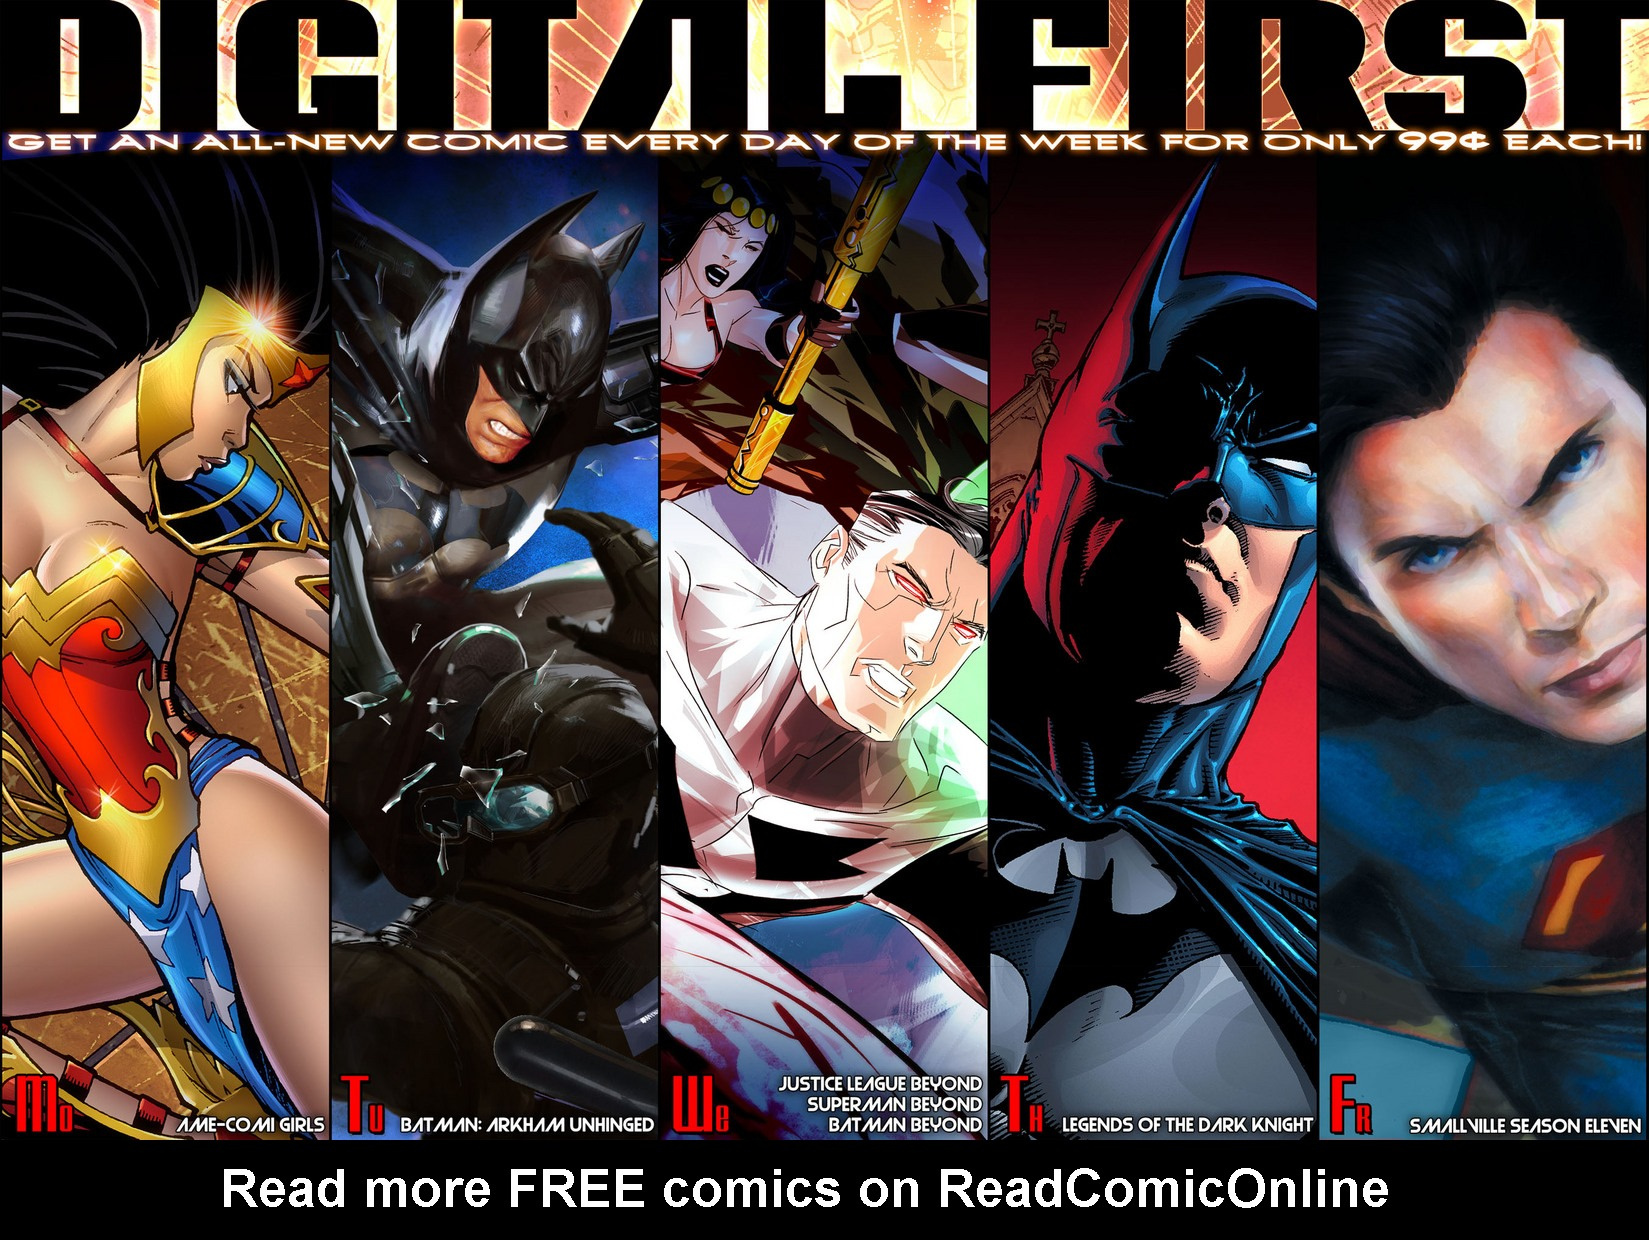 Read online Ame-Comi Girls comic -  Issue #3 - 23